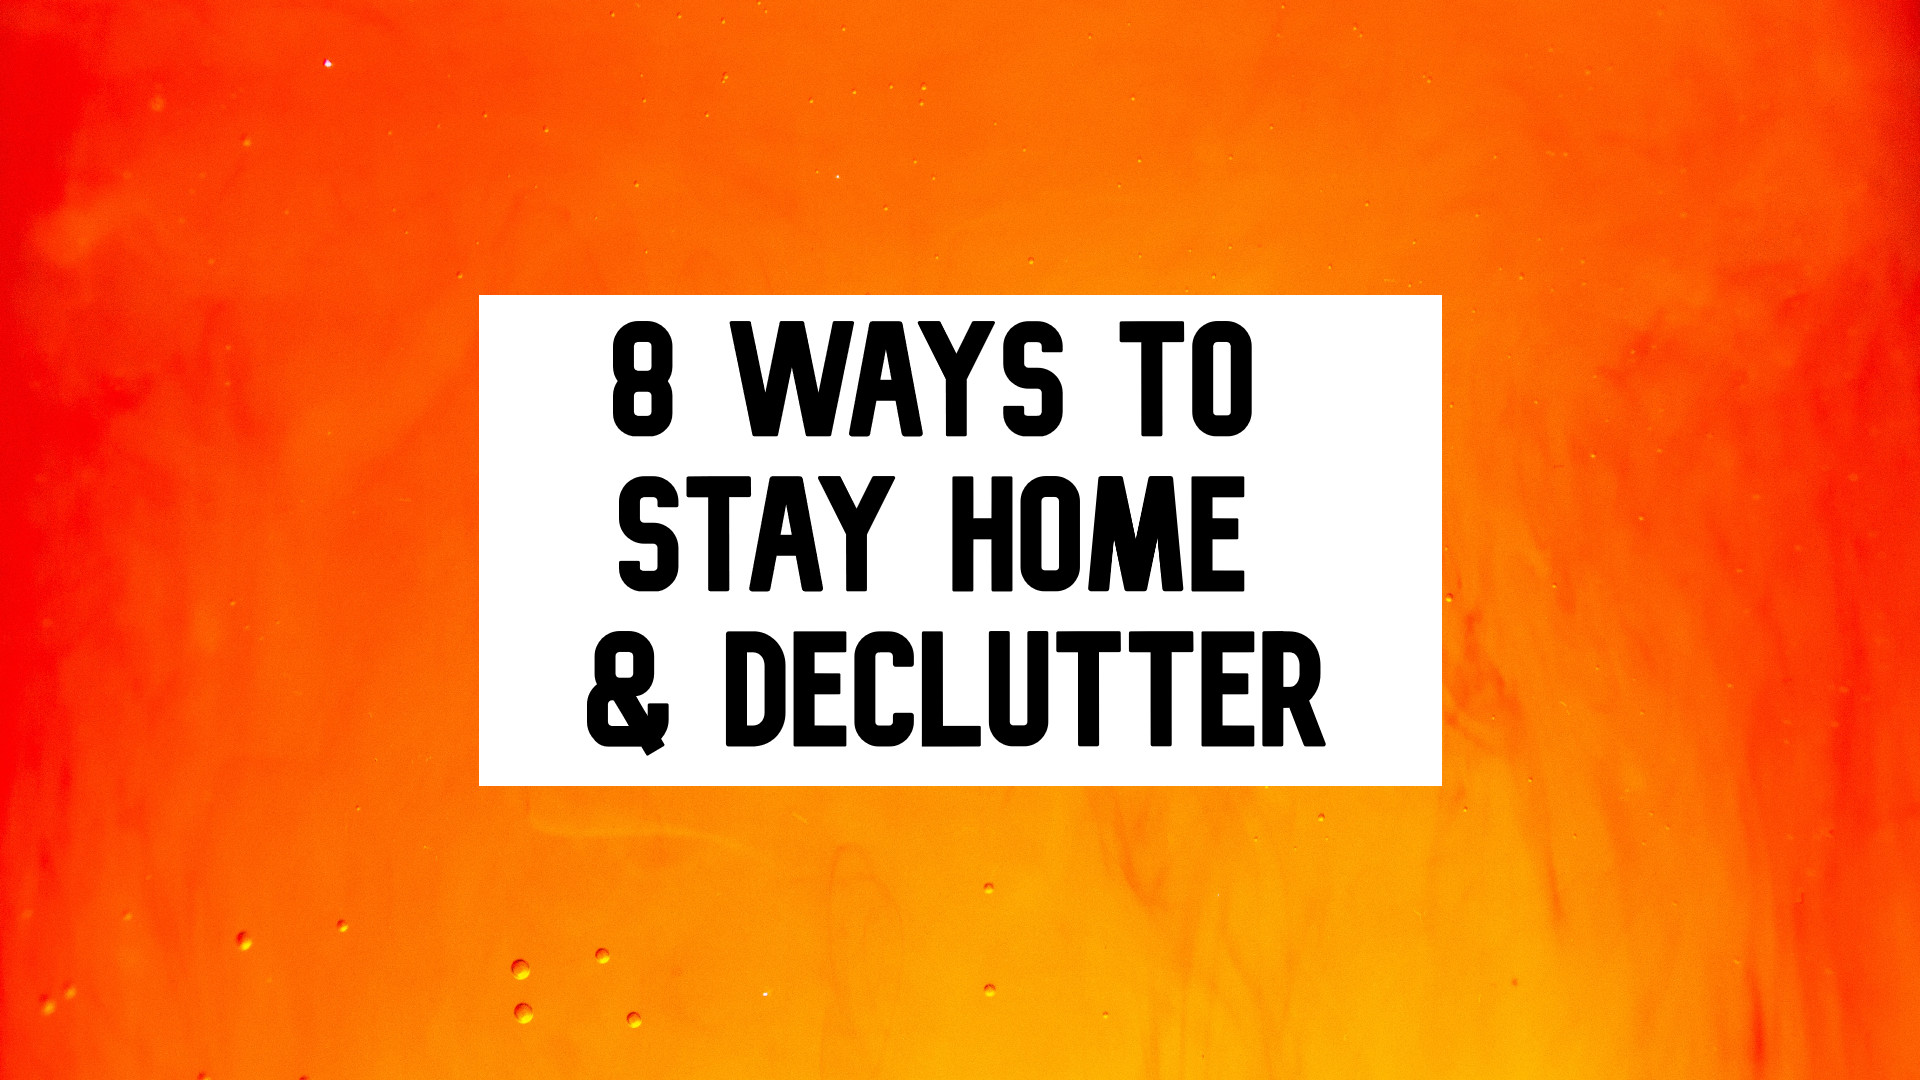 stay home and declutter